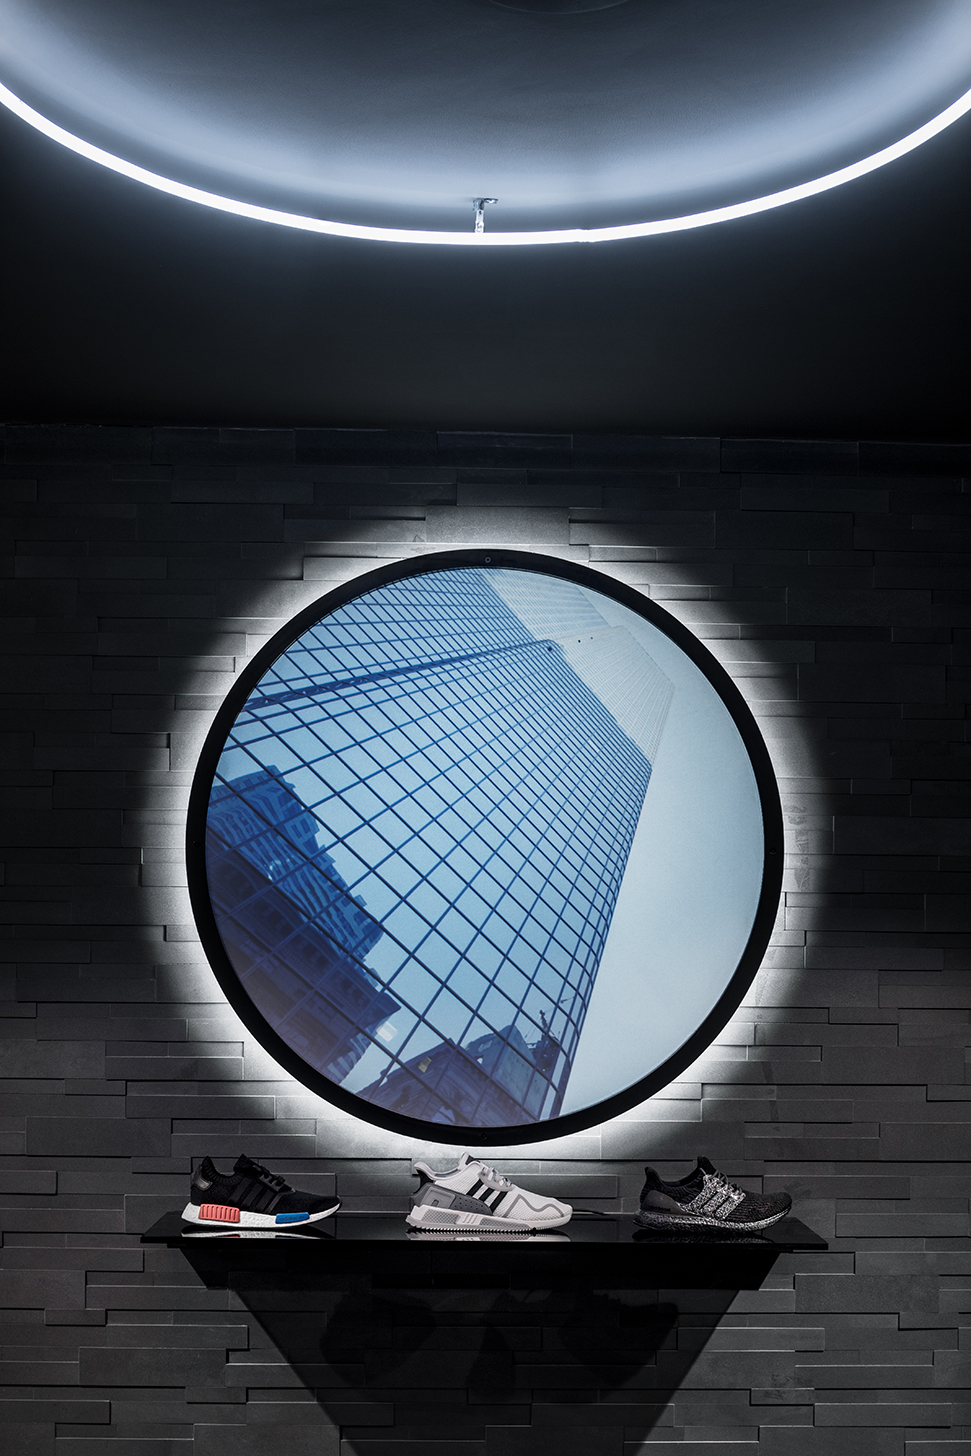 Three shoes on a shelf below a halo ring of neon and the Shrine, a circular projection screen showing a building as seen from below.